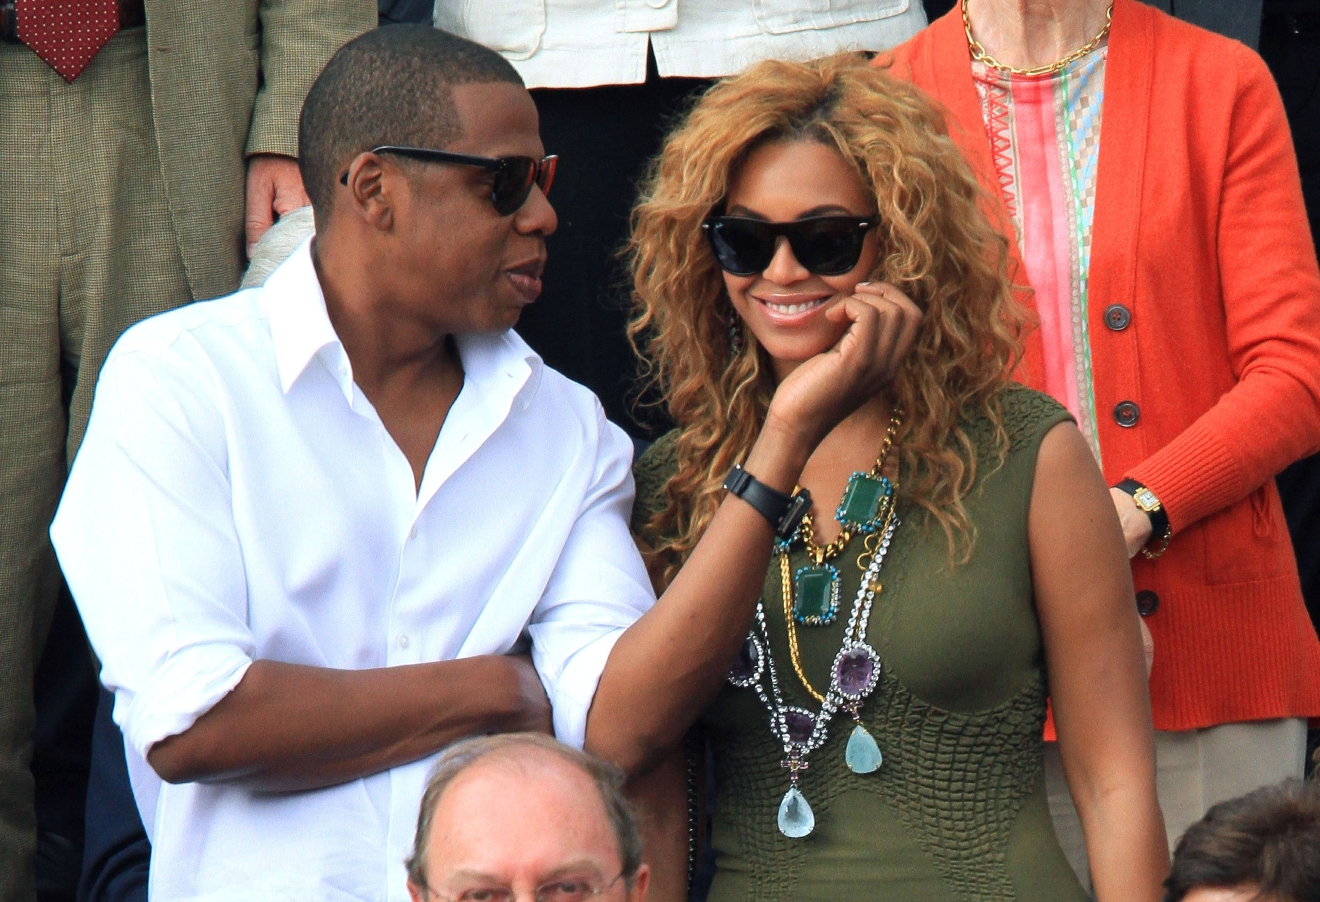 Jay-Z and Beyonce Knowles watch the men's final match between Rafael Nadal and Robin Soderling during the French Open at the Roland Garros stadium on June 6, 2010. (WENN)